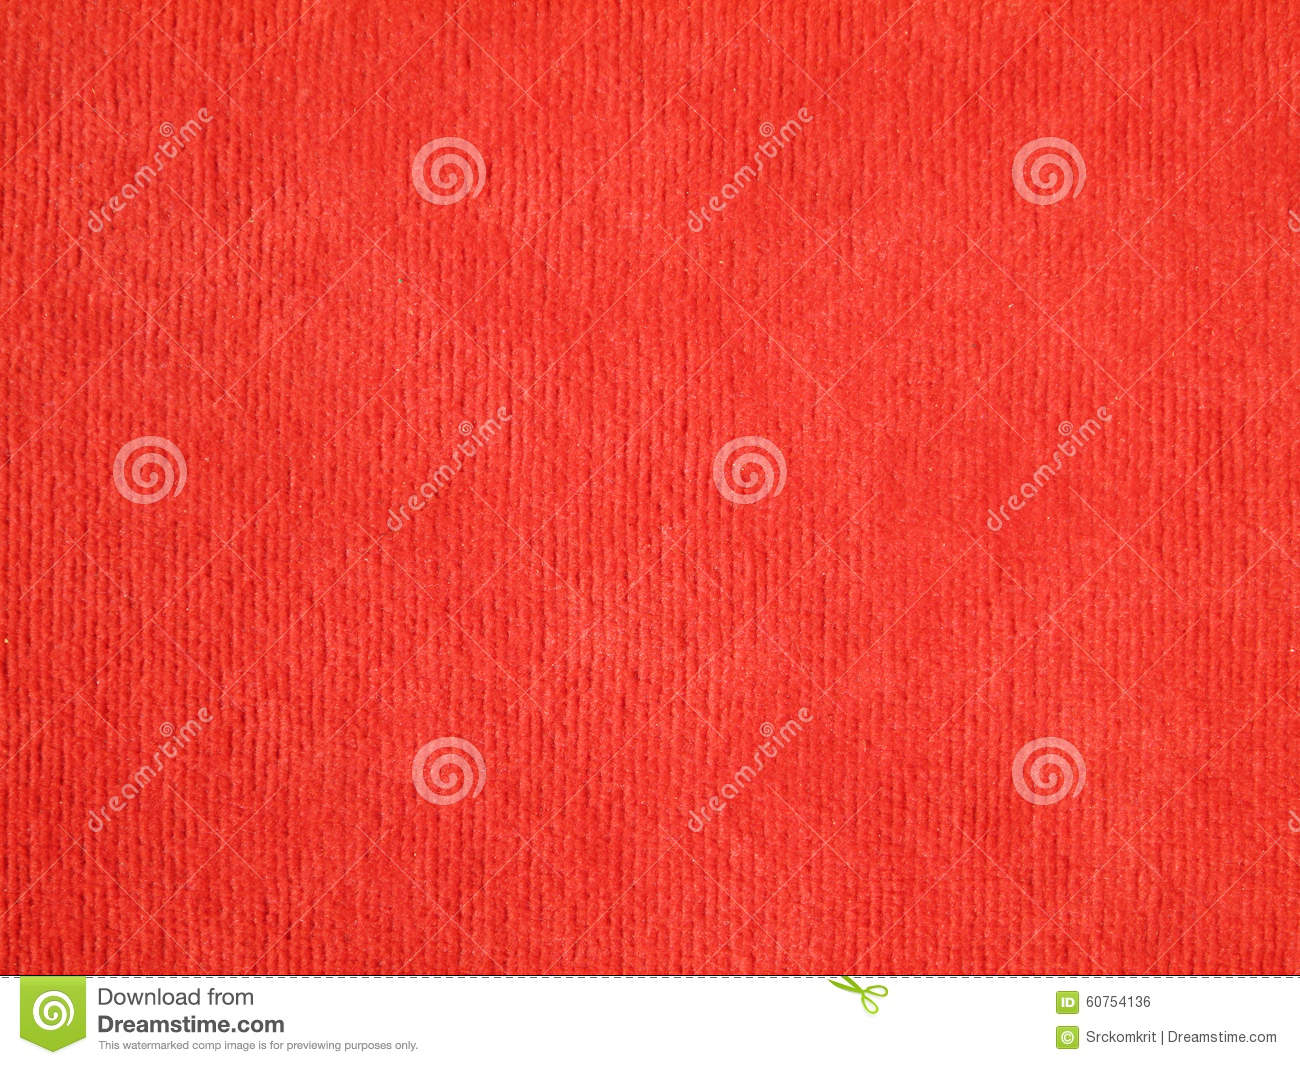 colorful carpet texture background - photo #8